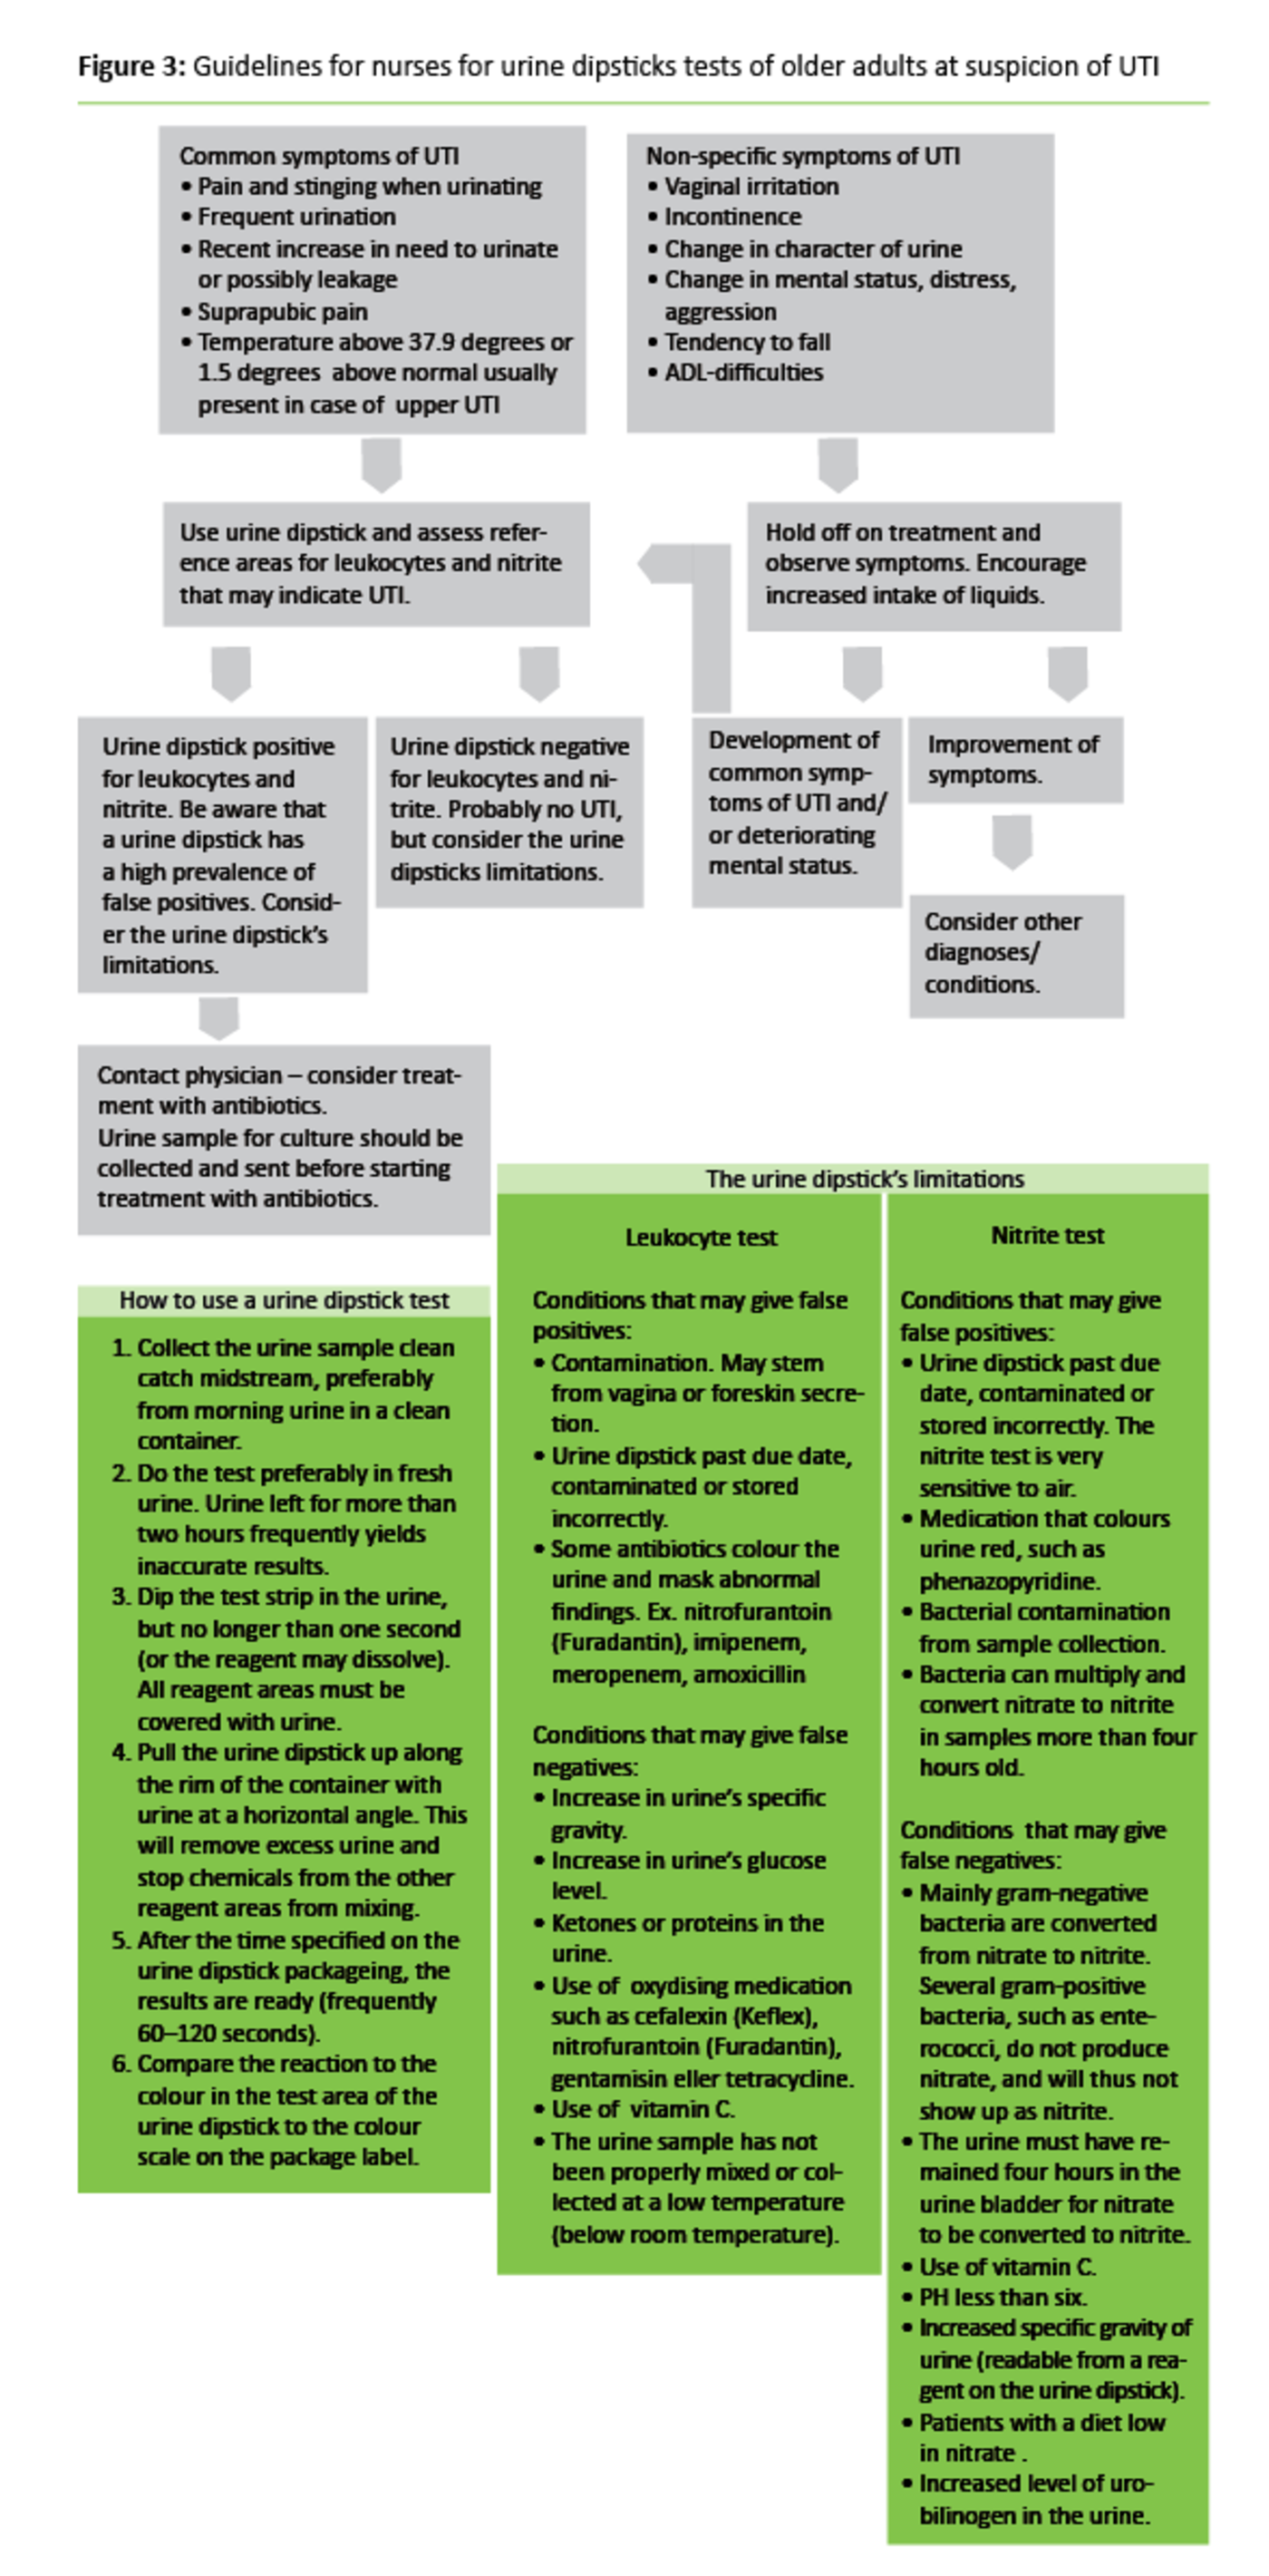 Figure 3: Guidelines for nurses for urine dipsticks tests of older adults at suspicion of UTI